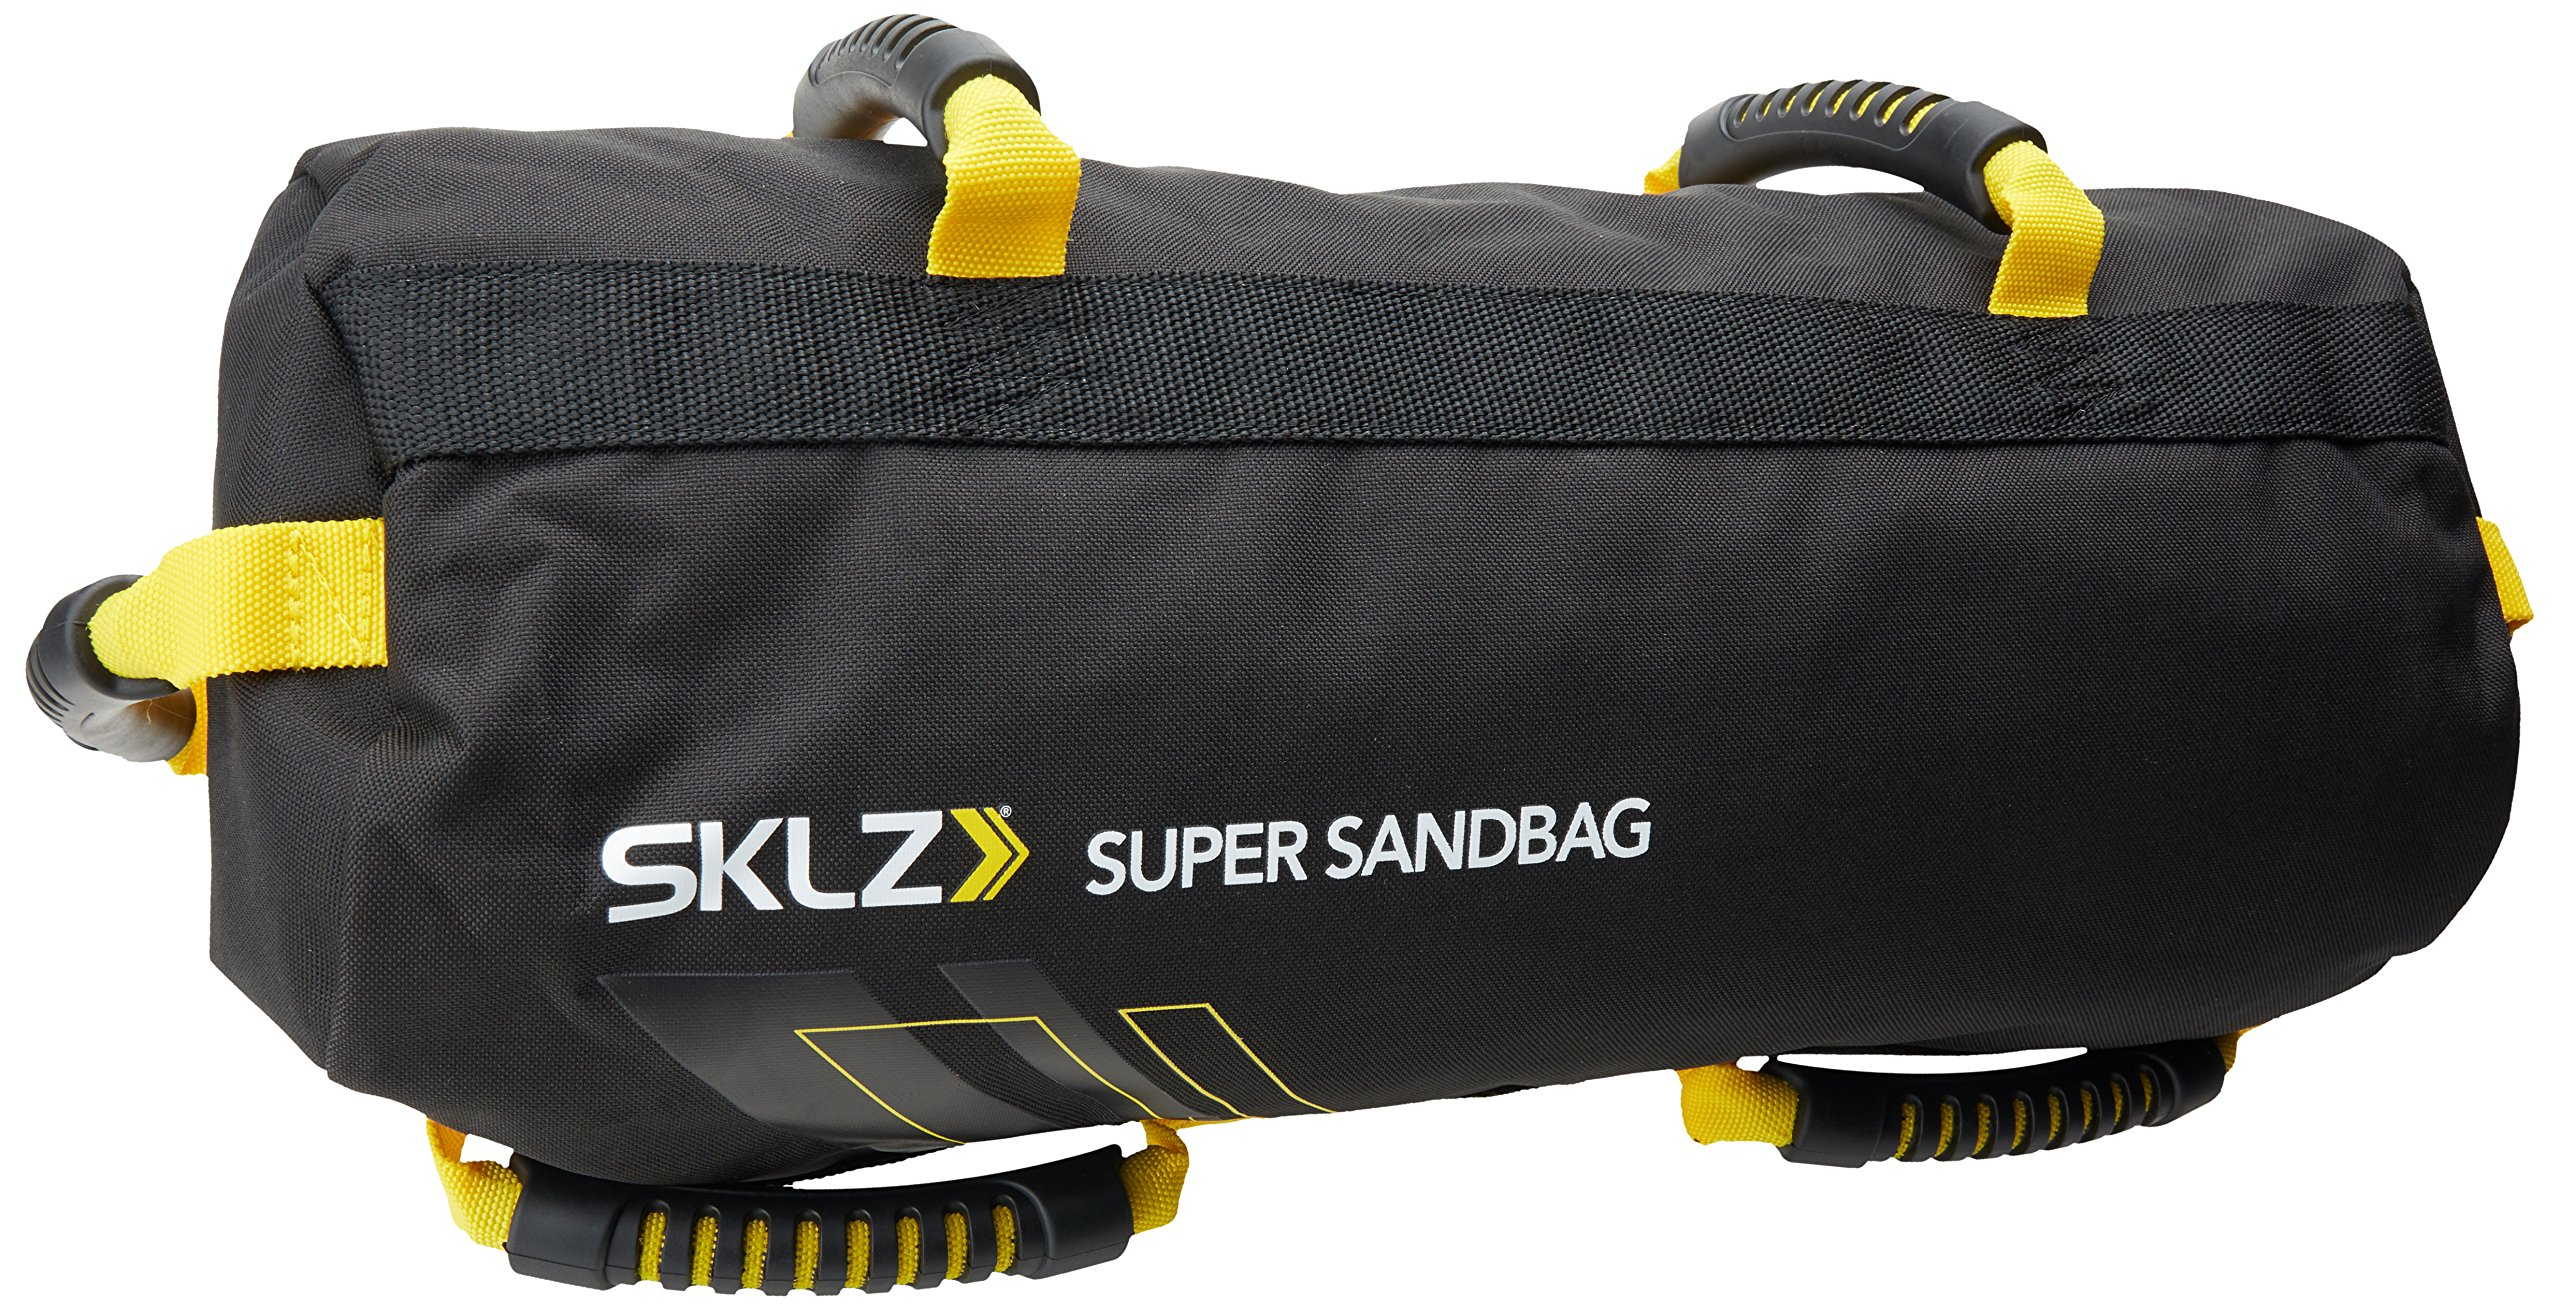 SKLZ Super Sandbag - Heavy Duty Training Weight Bag by SKLZ (Image #2)